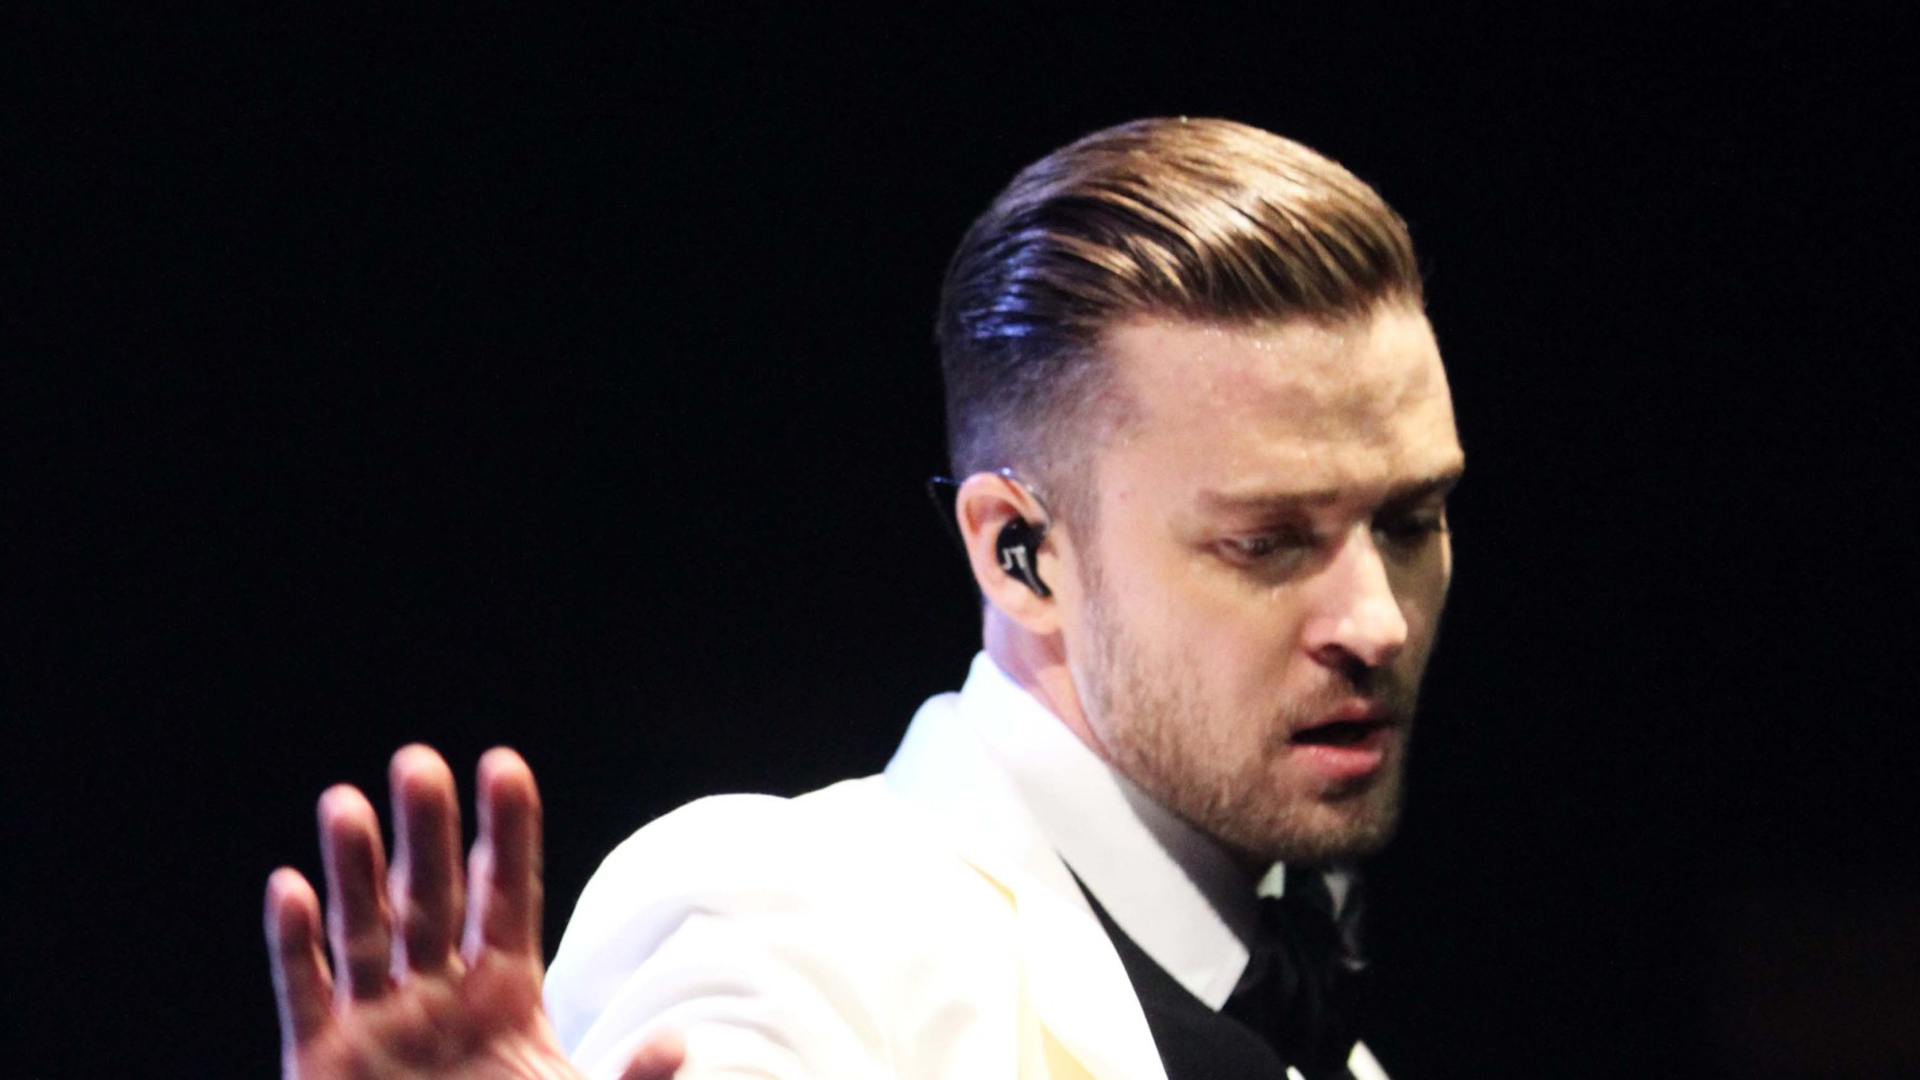 Justin Timberlake Full Hd